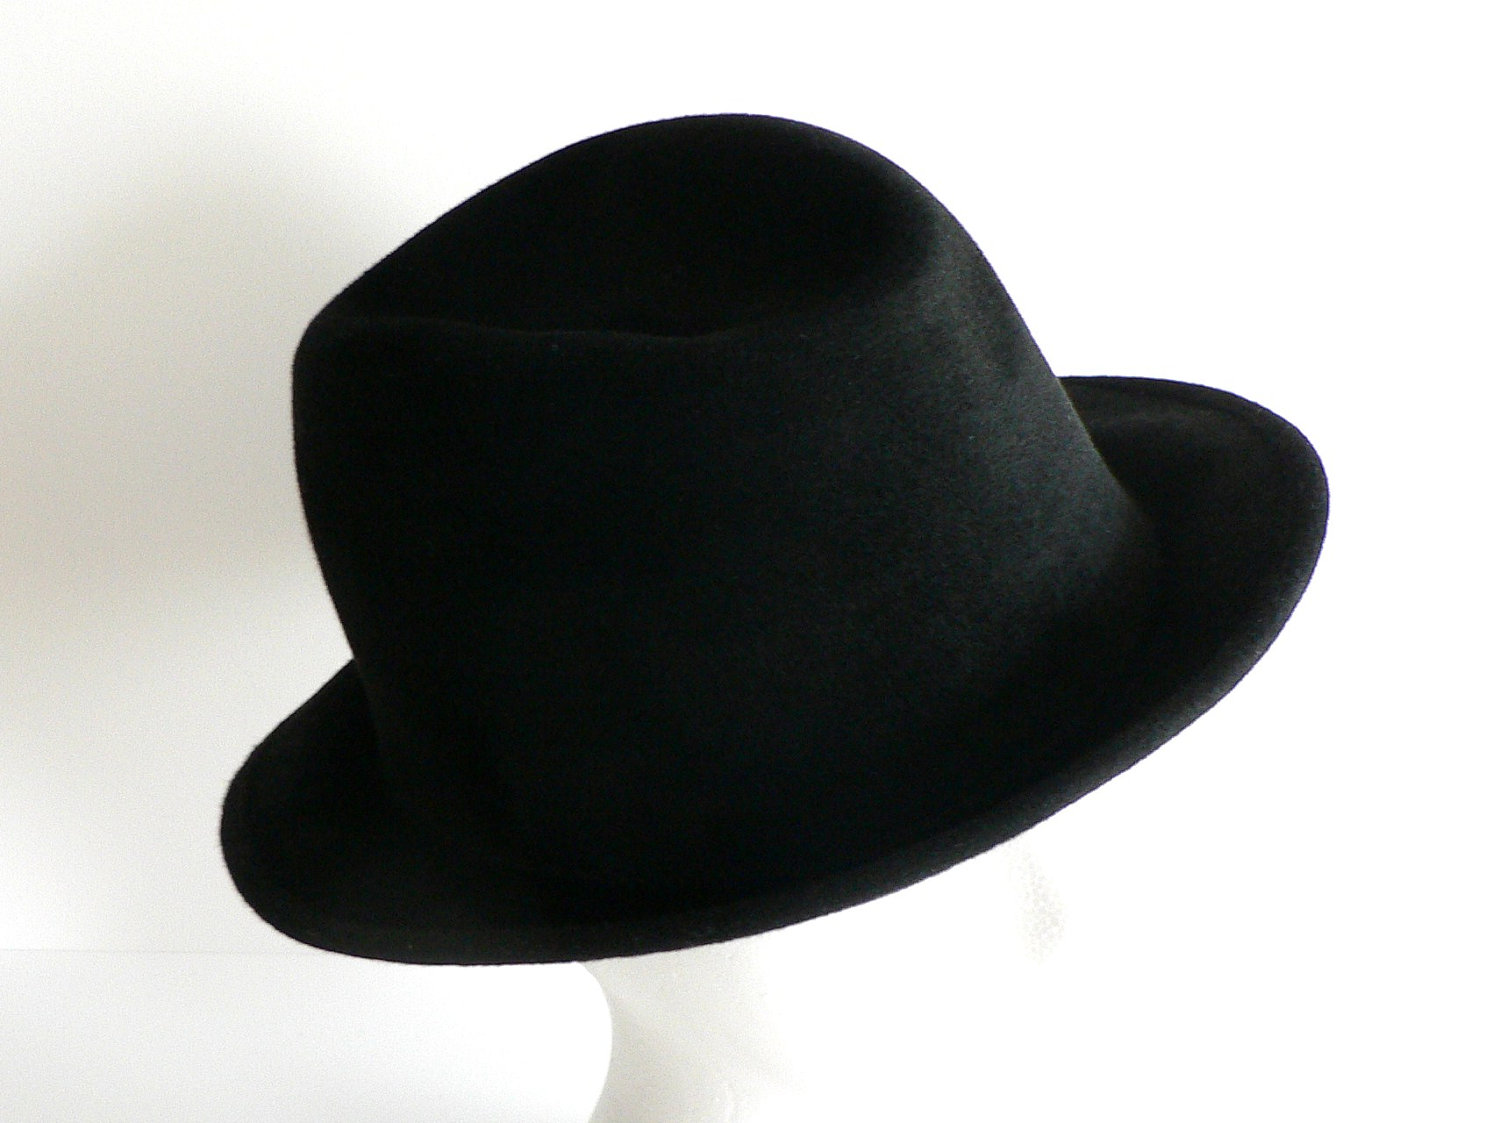 Fedora hats for men and women alike are a street-savvy fashion choice. Hats in classic colors that are fitted with ribbon hatbands are perfect for those who want to create a retro look. Hats in brighter colors and non-traditional materials such as straw and denim add a carefree-yet-edgy spin to any outfit.